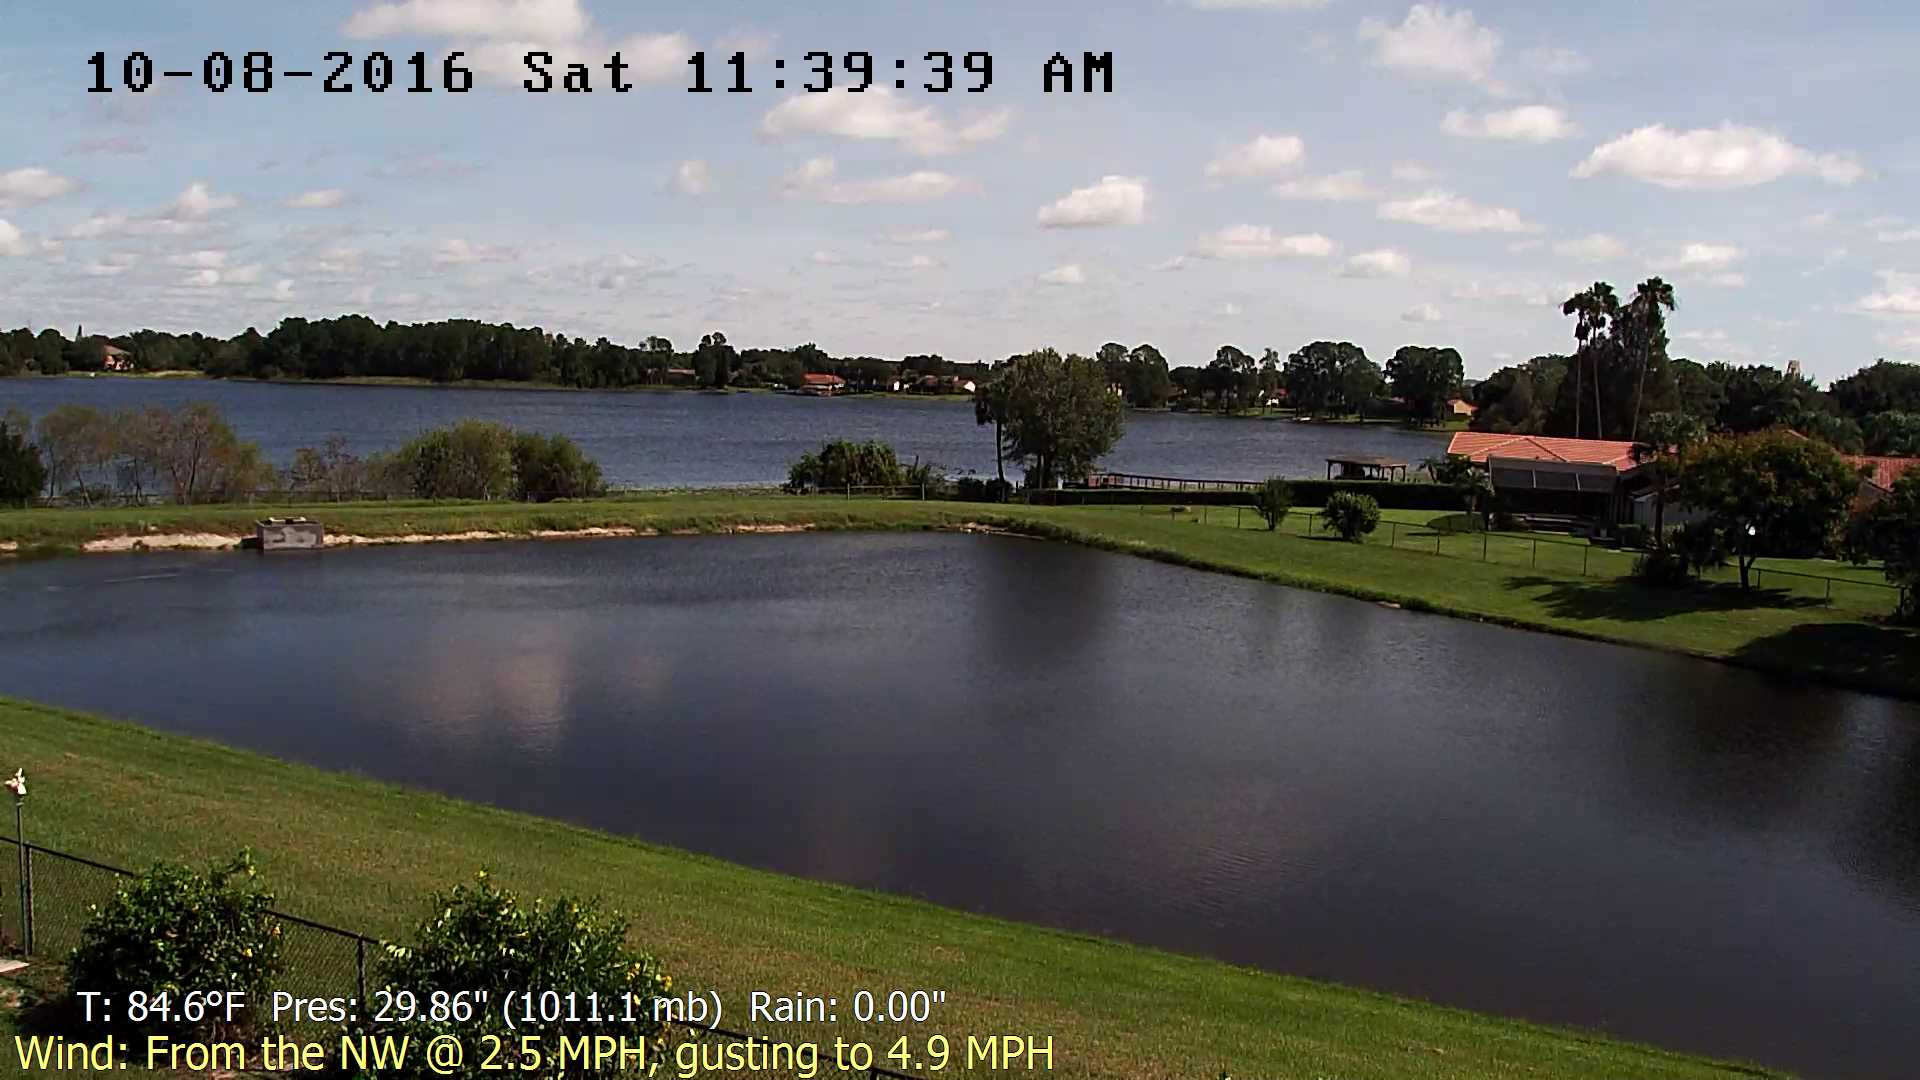 Flhurricane Orlando Lake Marsha Cam recording approach of Matthew (2016)